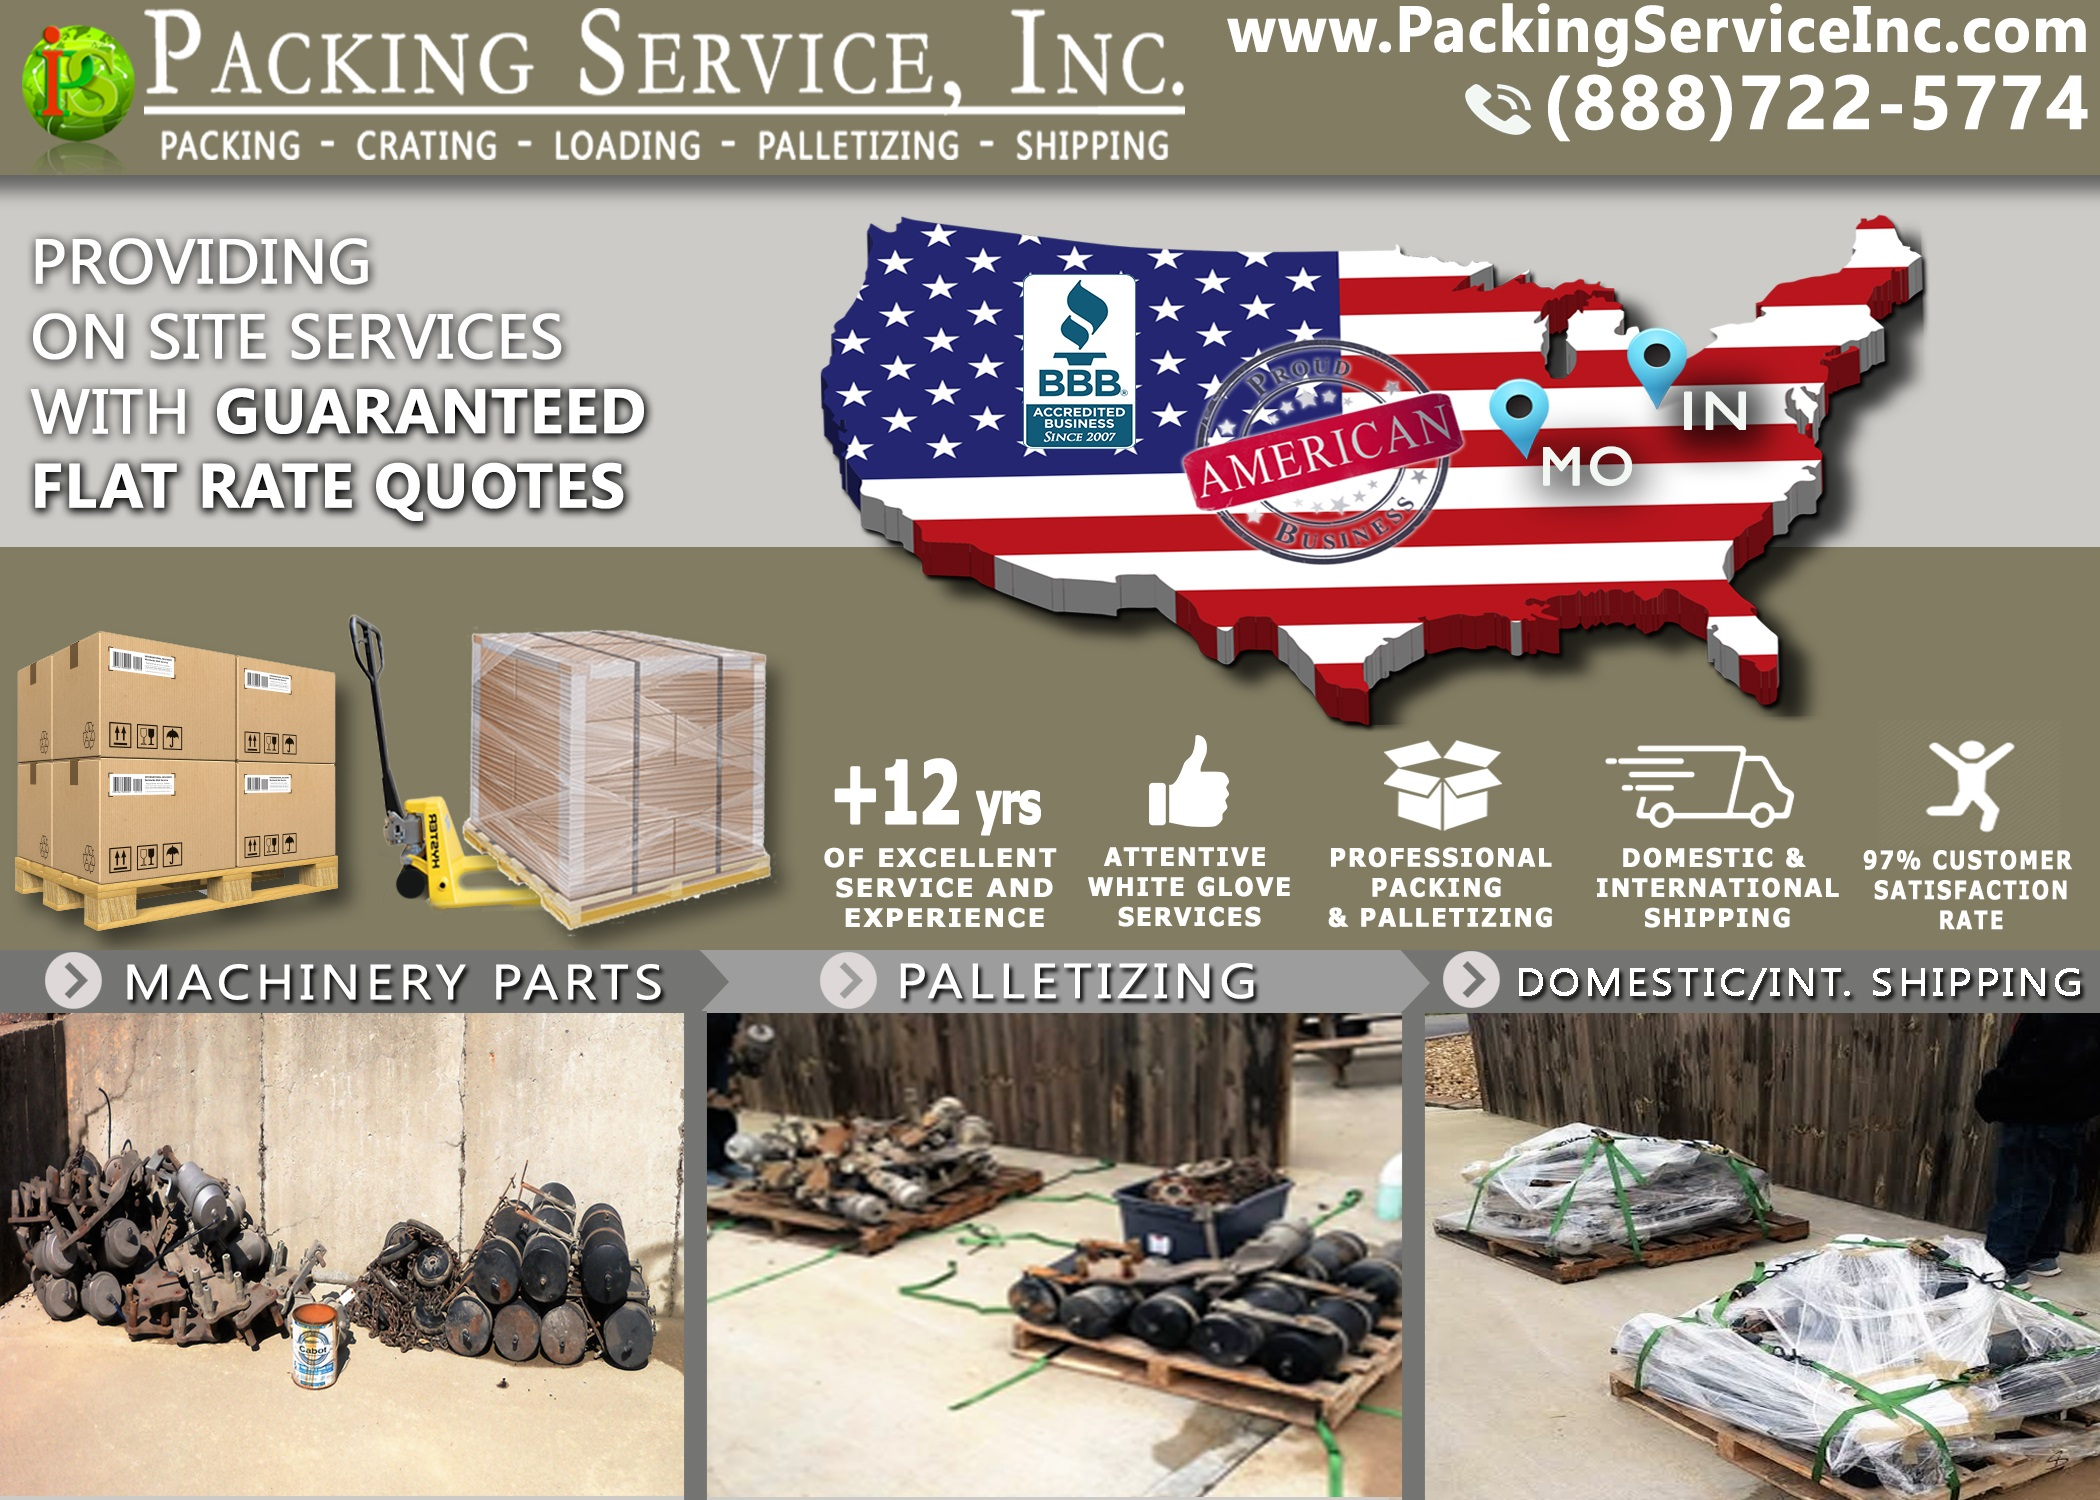 Wrapping, Palletizing and Shipping from WARRENSBURG, MO to North Vernon, IN with Packing Service, Inc. - 731